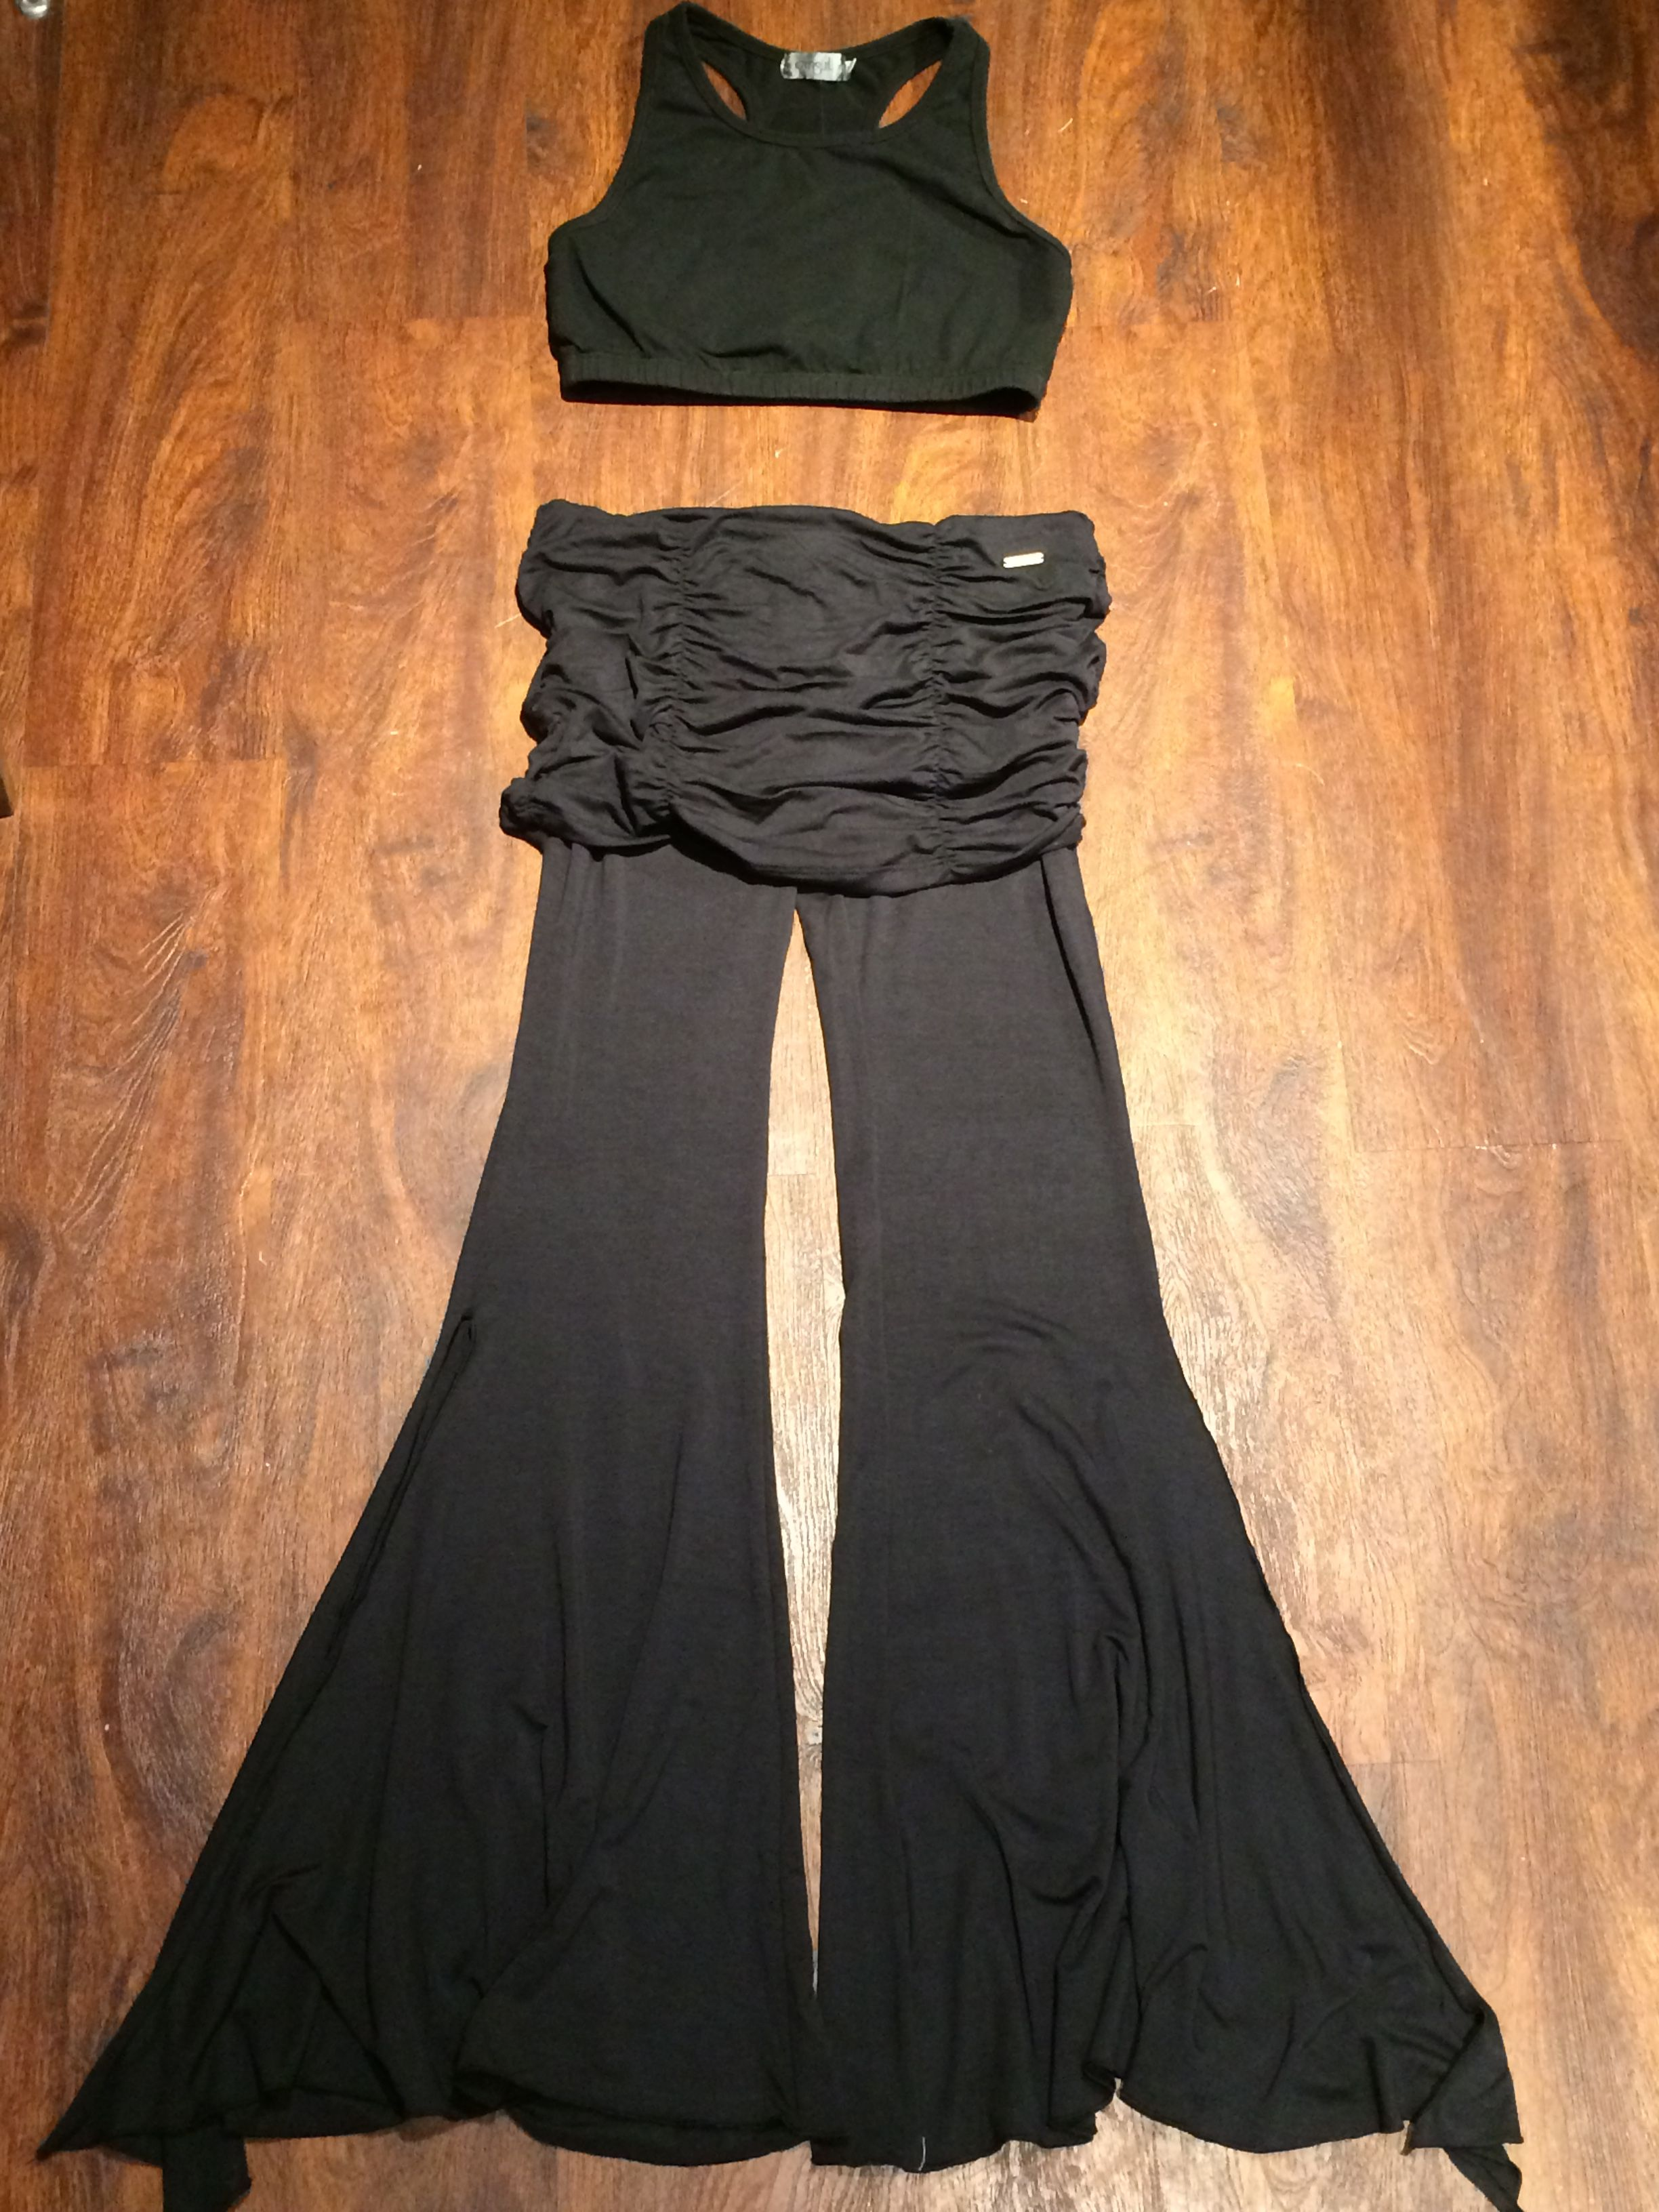 Capezio Warm-Up tights are here! Stirrup heel and